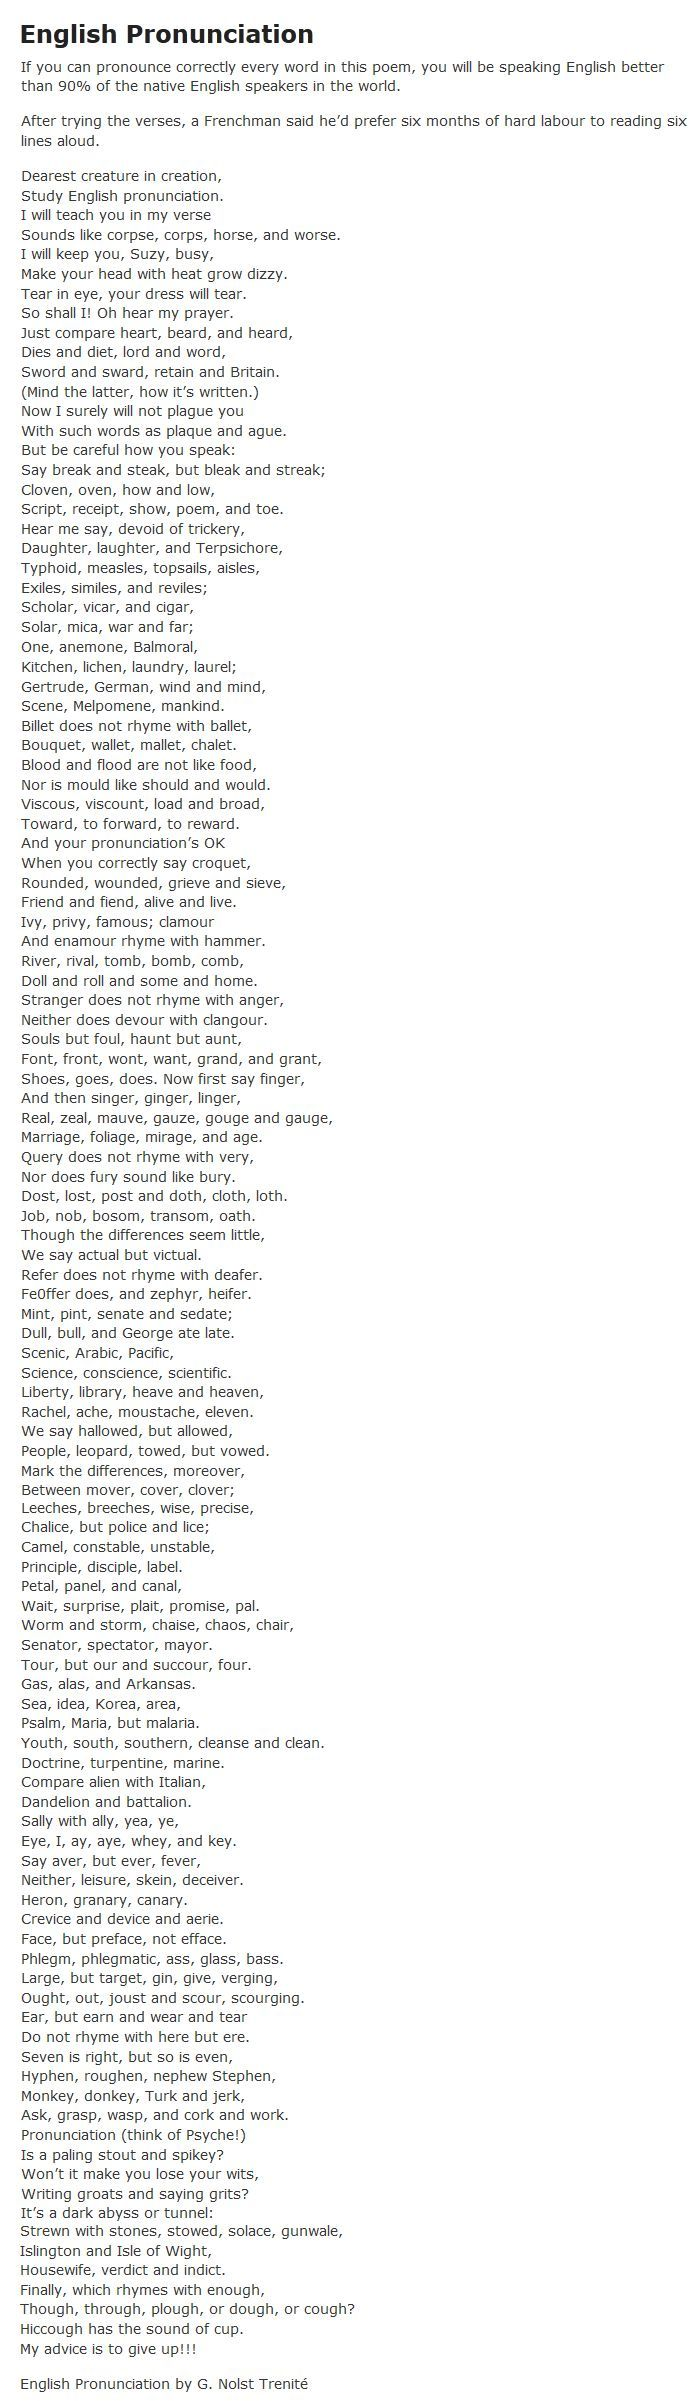 English pronunciation if you can pronounce correctly every word in this poem you